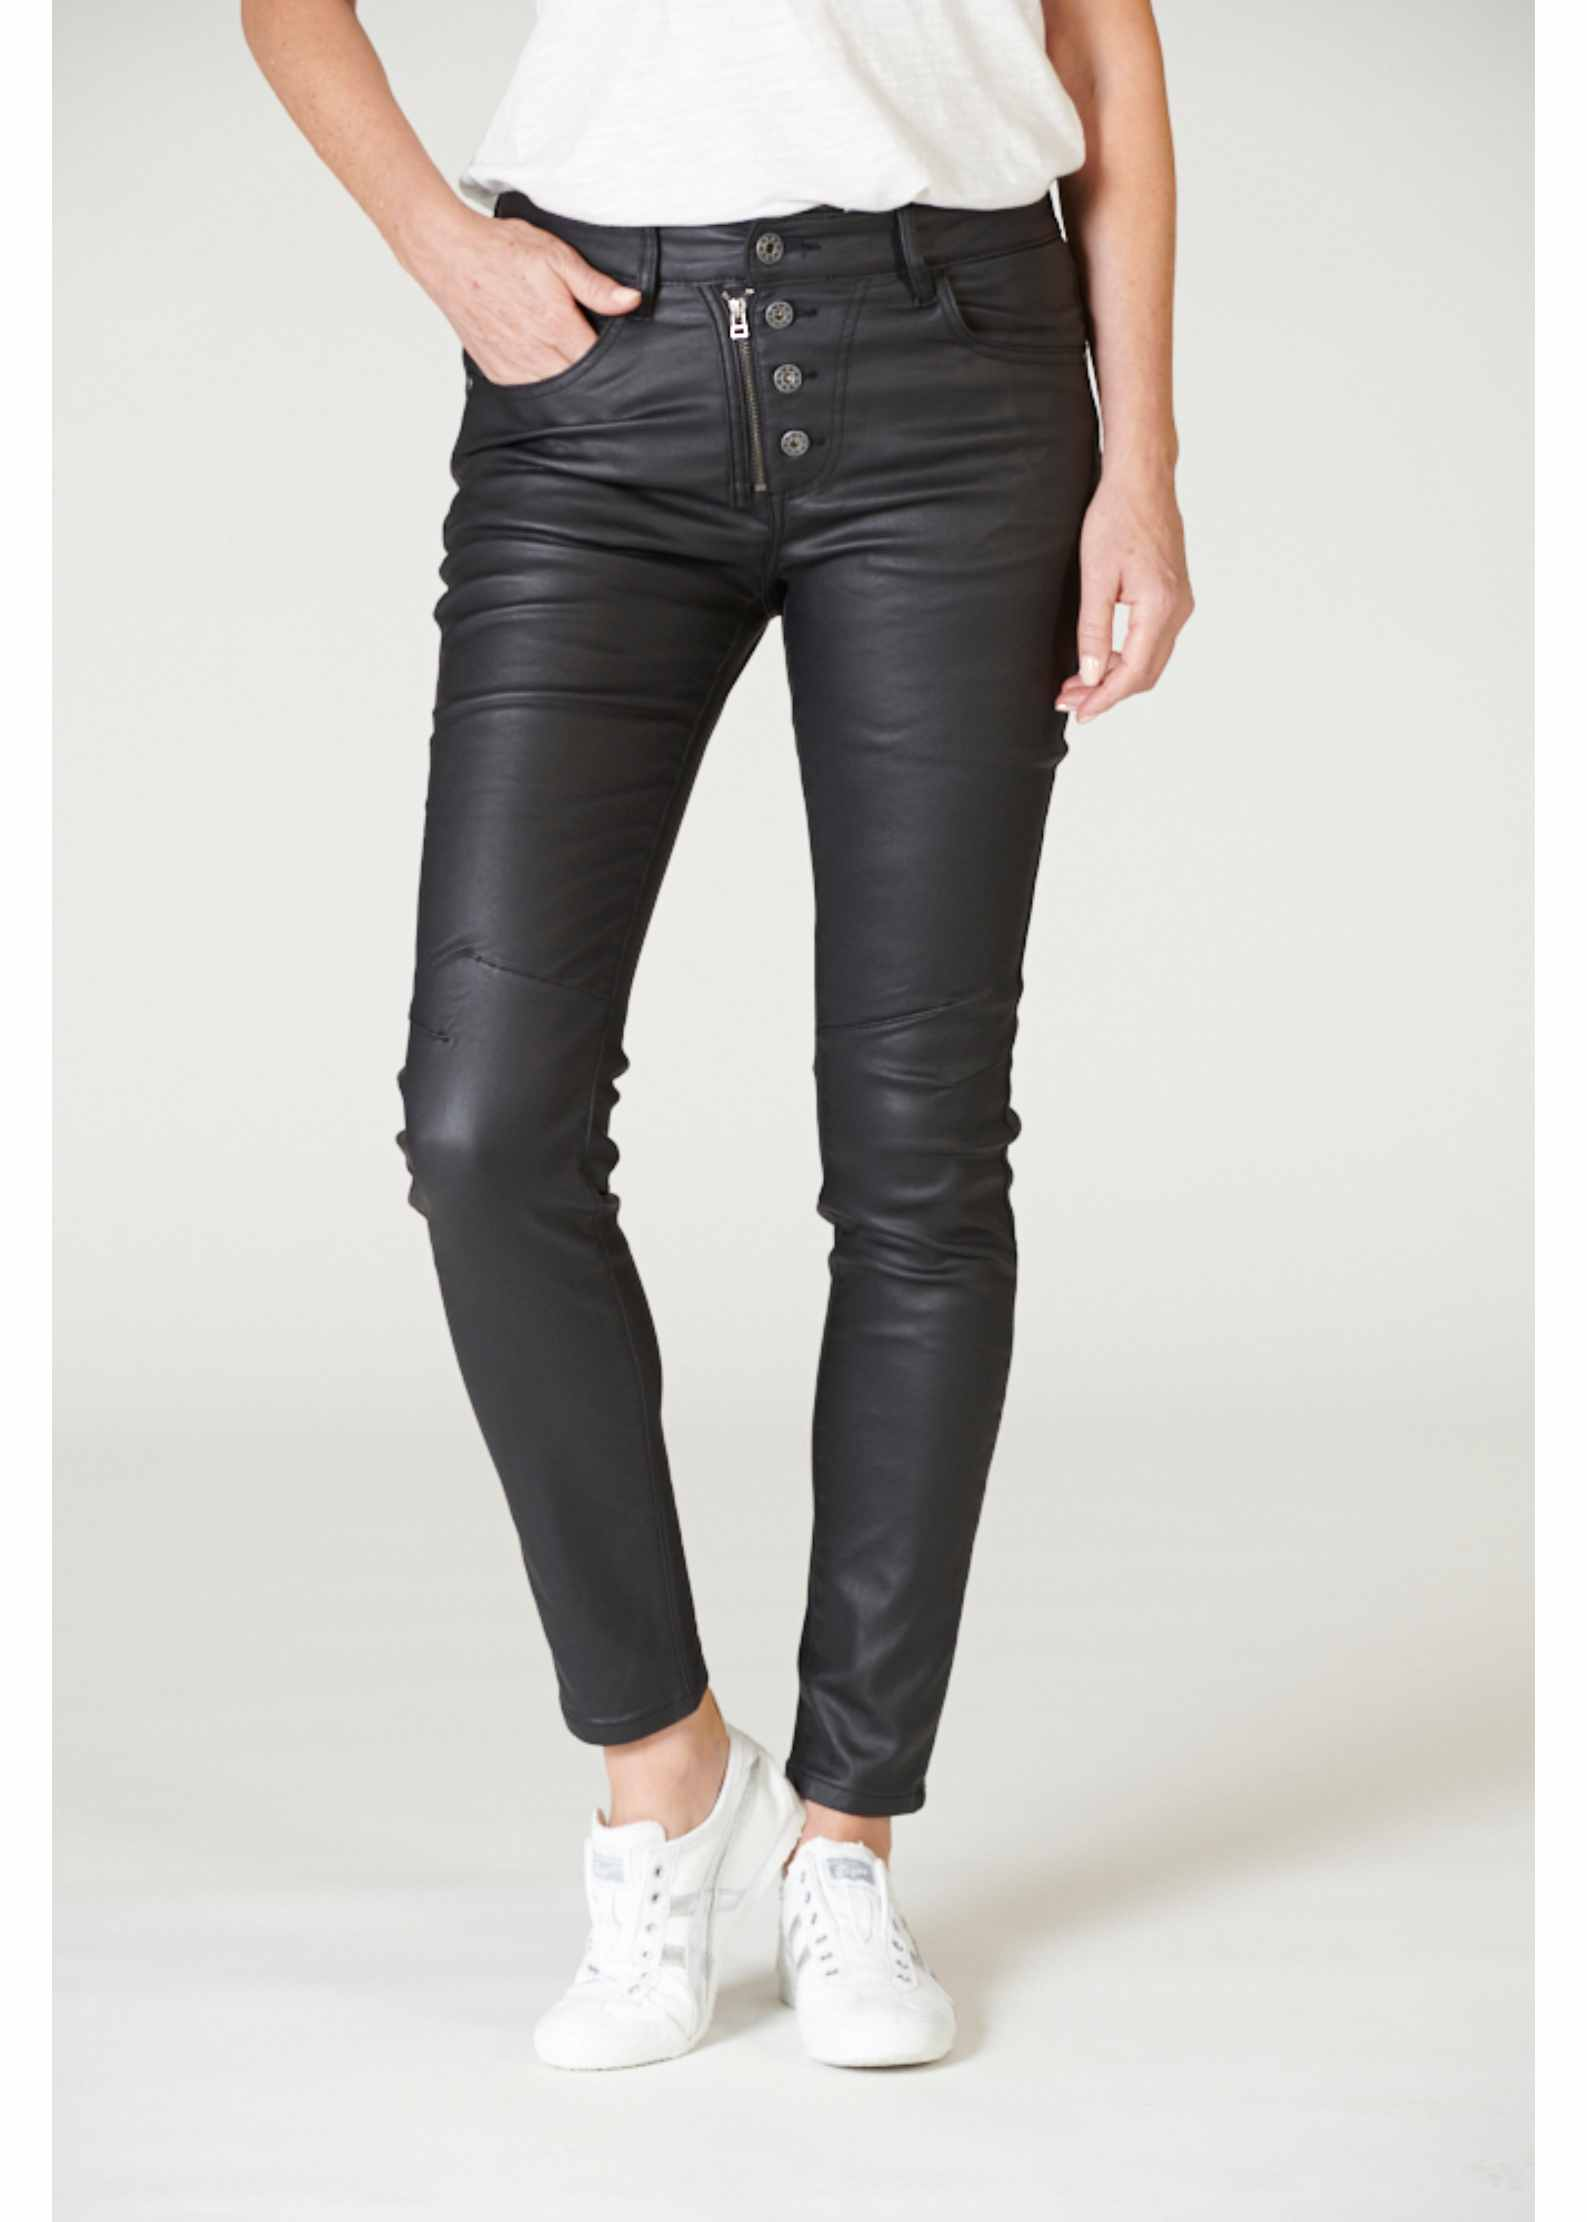 ITALIAN STAR Stevie Jeans - Black JEANS - Zabecca Living